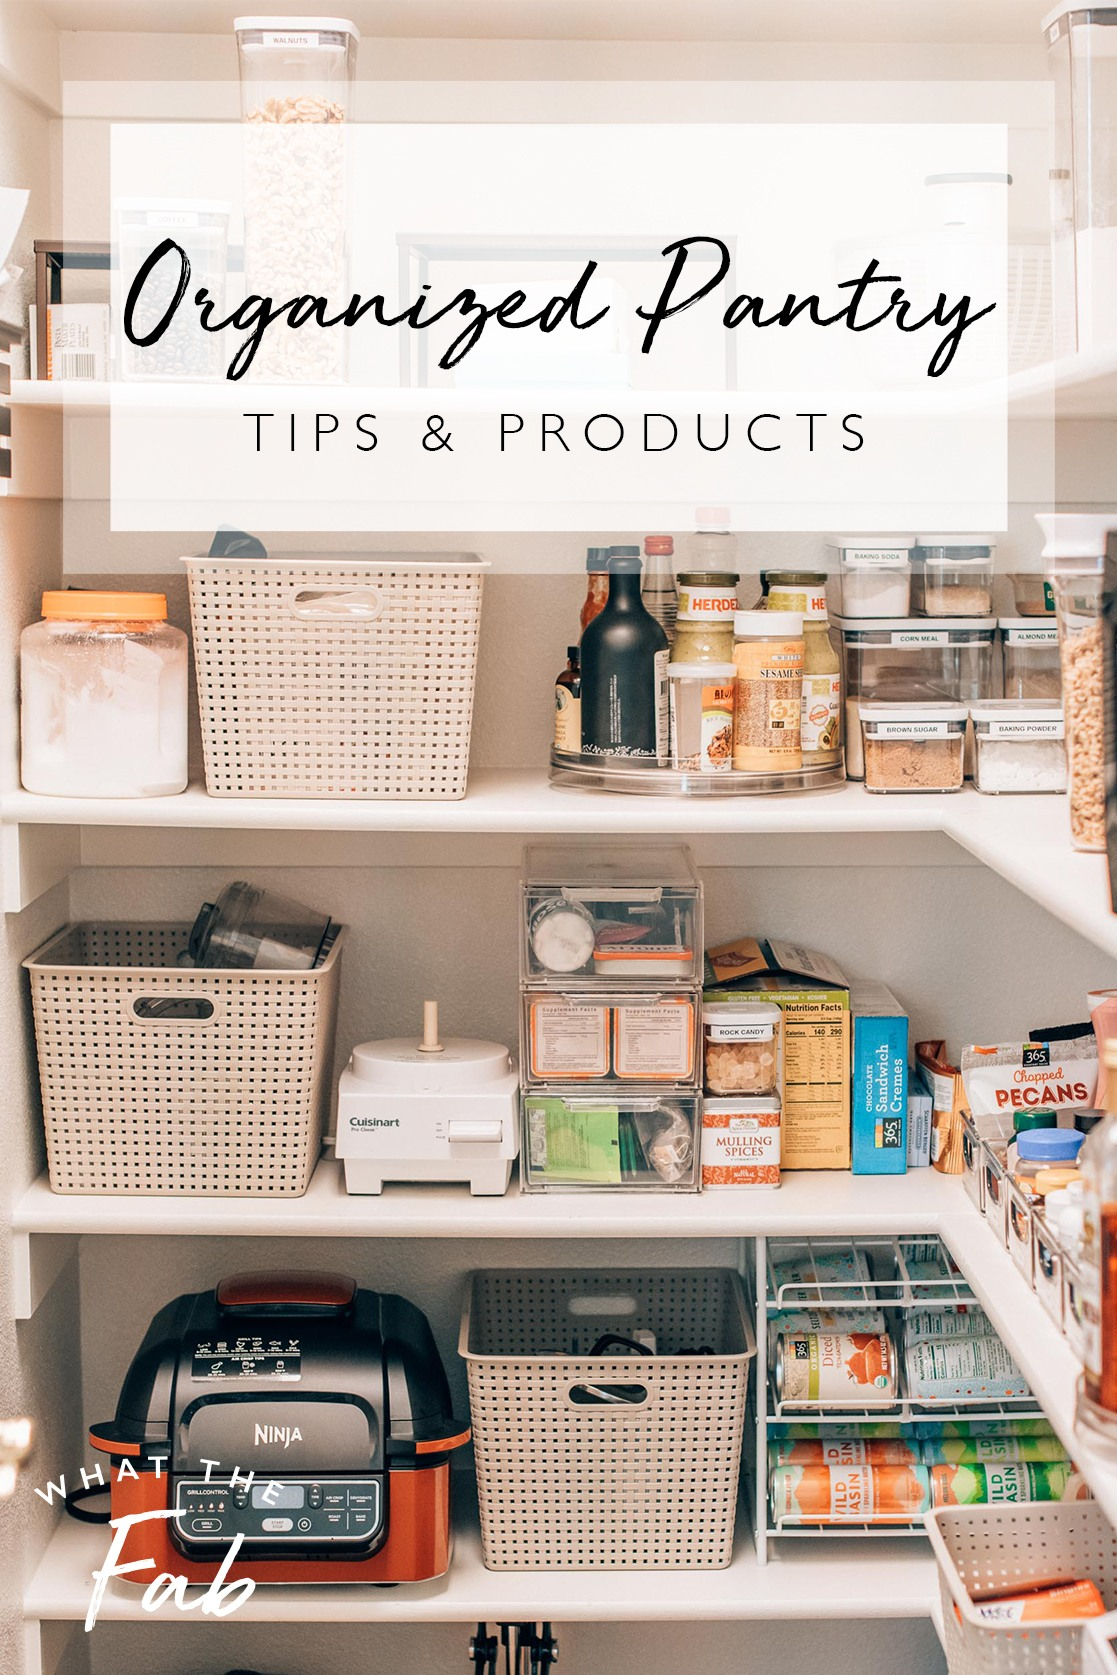 How to have a nice pantry, by lifestyle blogger What The Fab